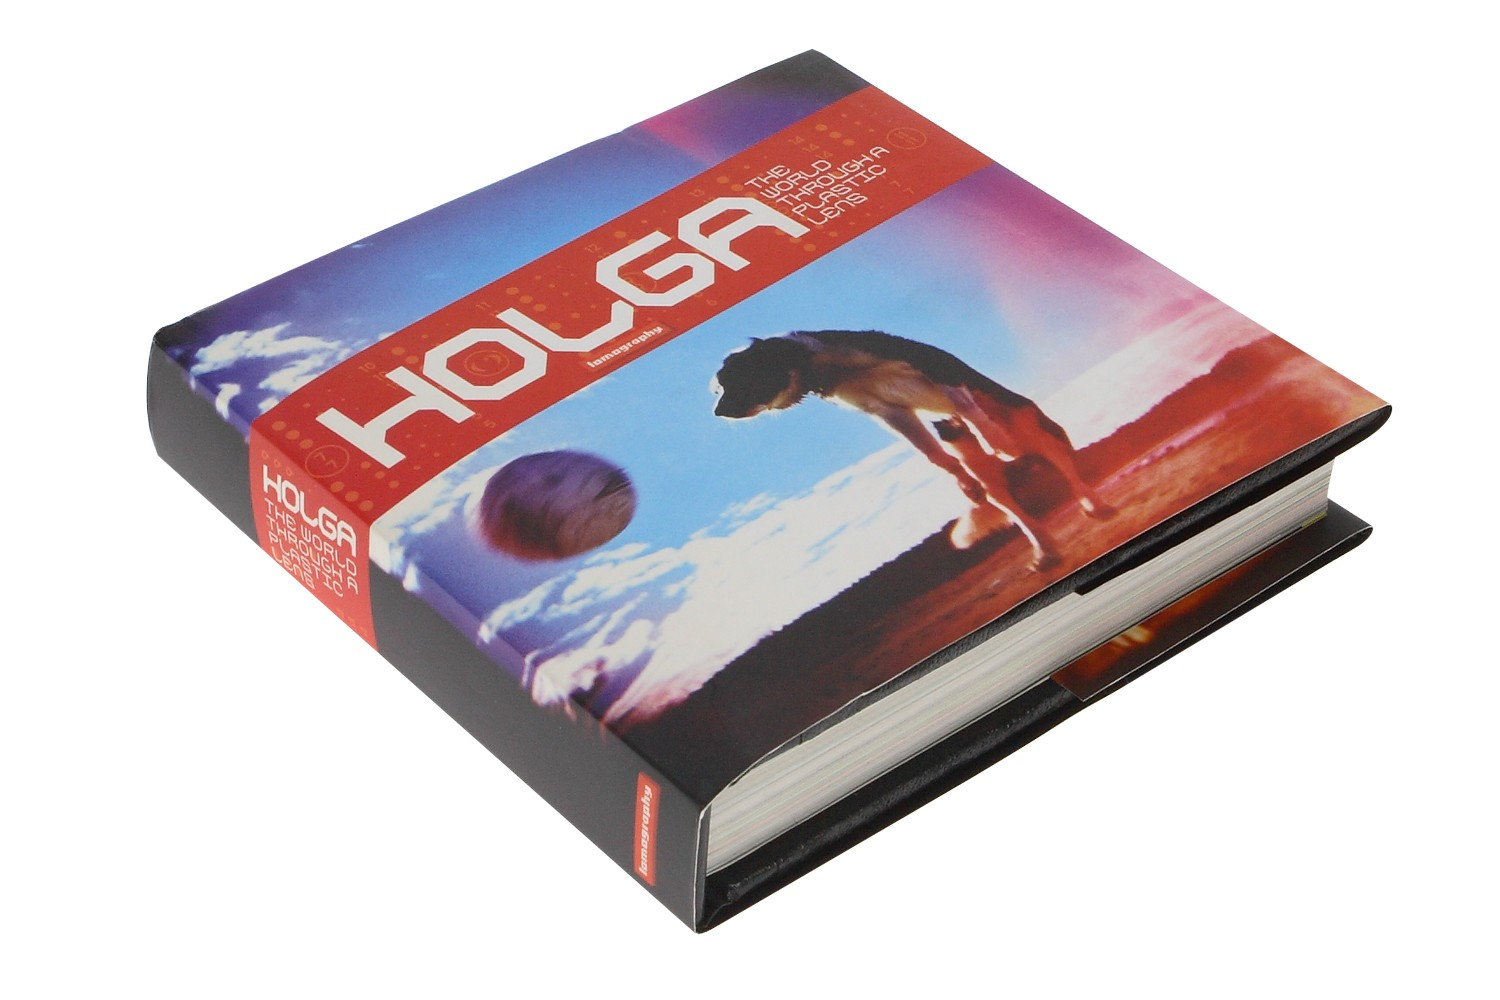 'The World Through A Plastic Lens' - Holga Book